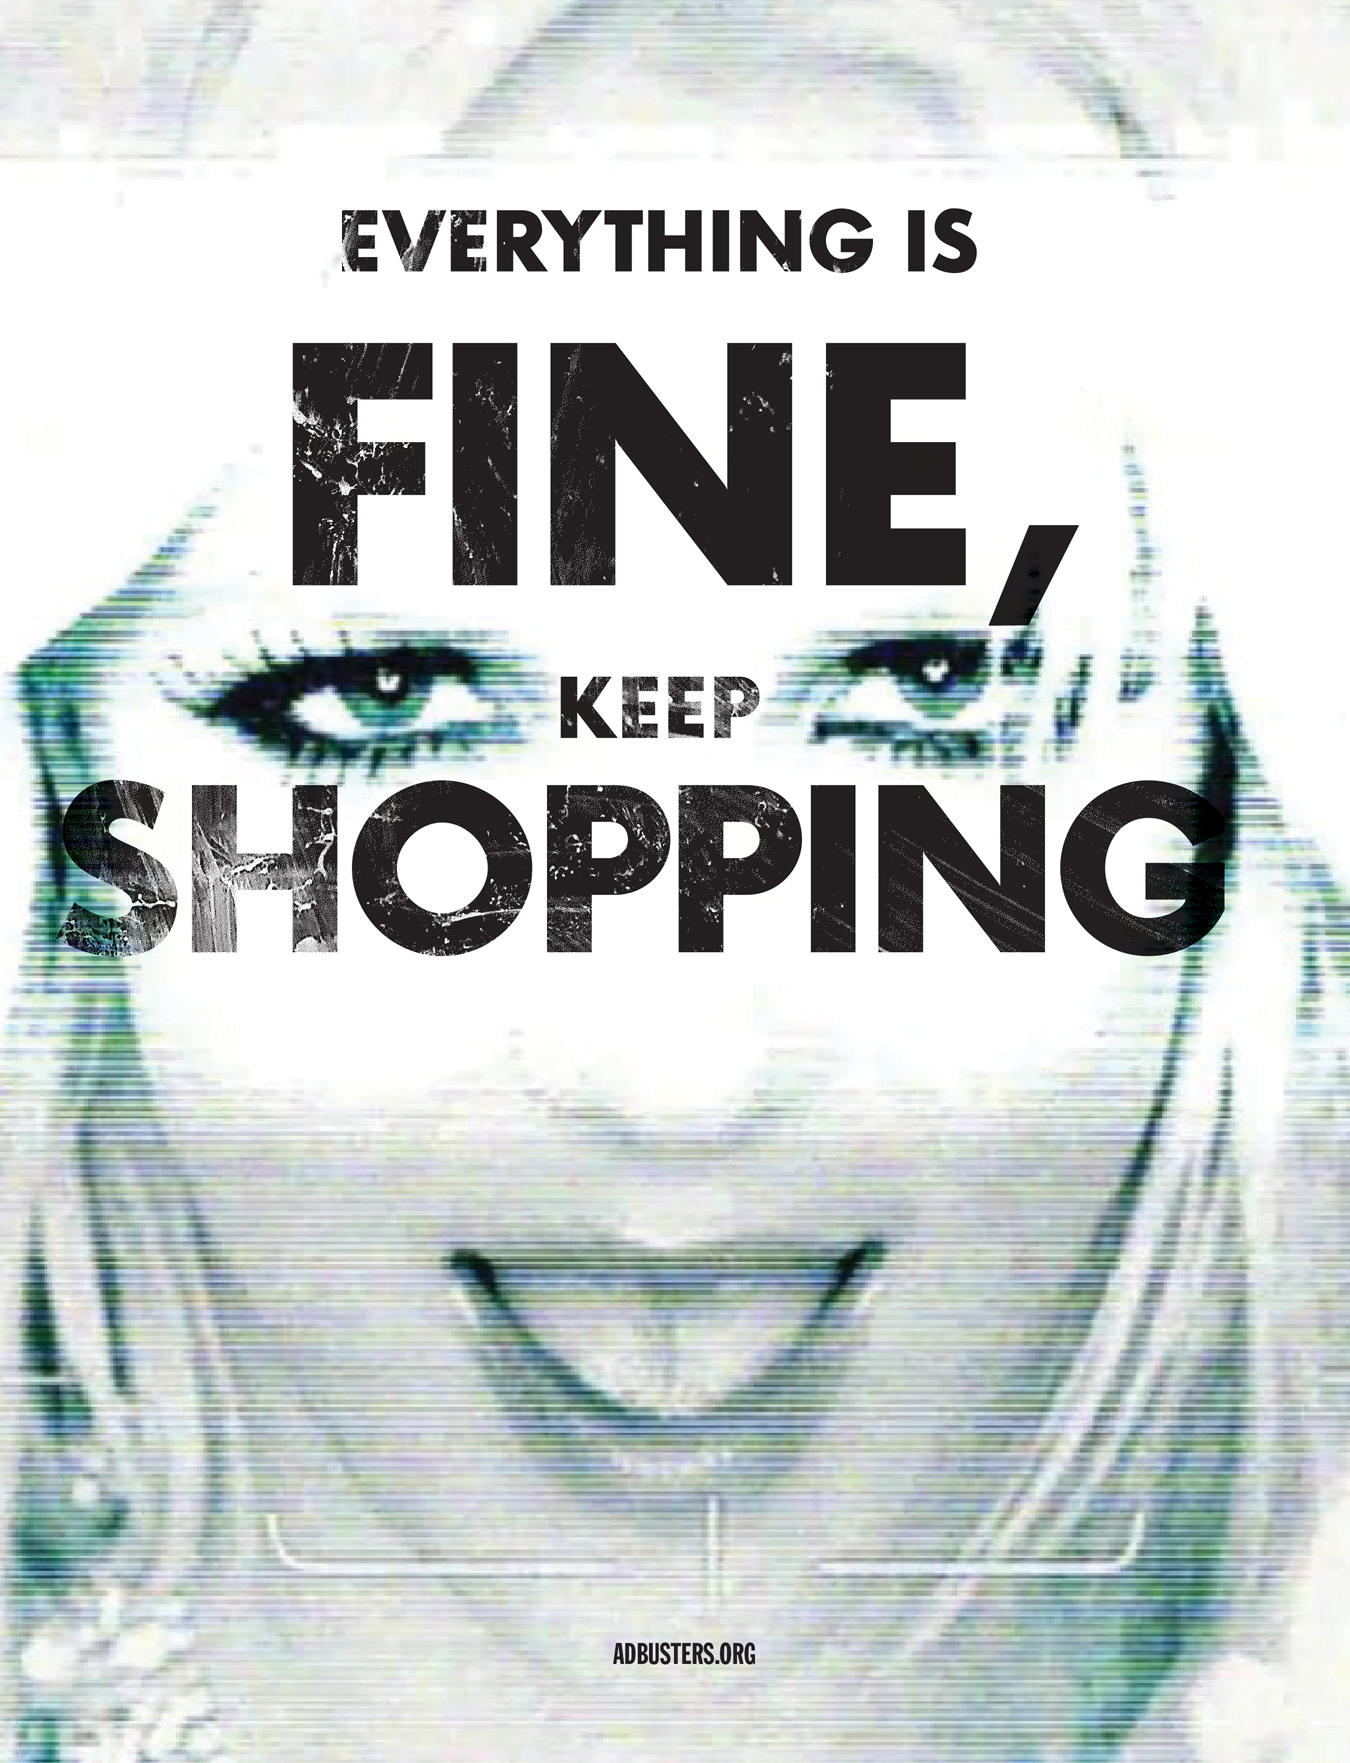 adbusters_everything-is-fine-keep-shopping.jpg